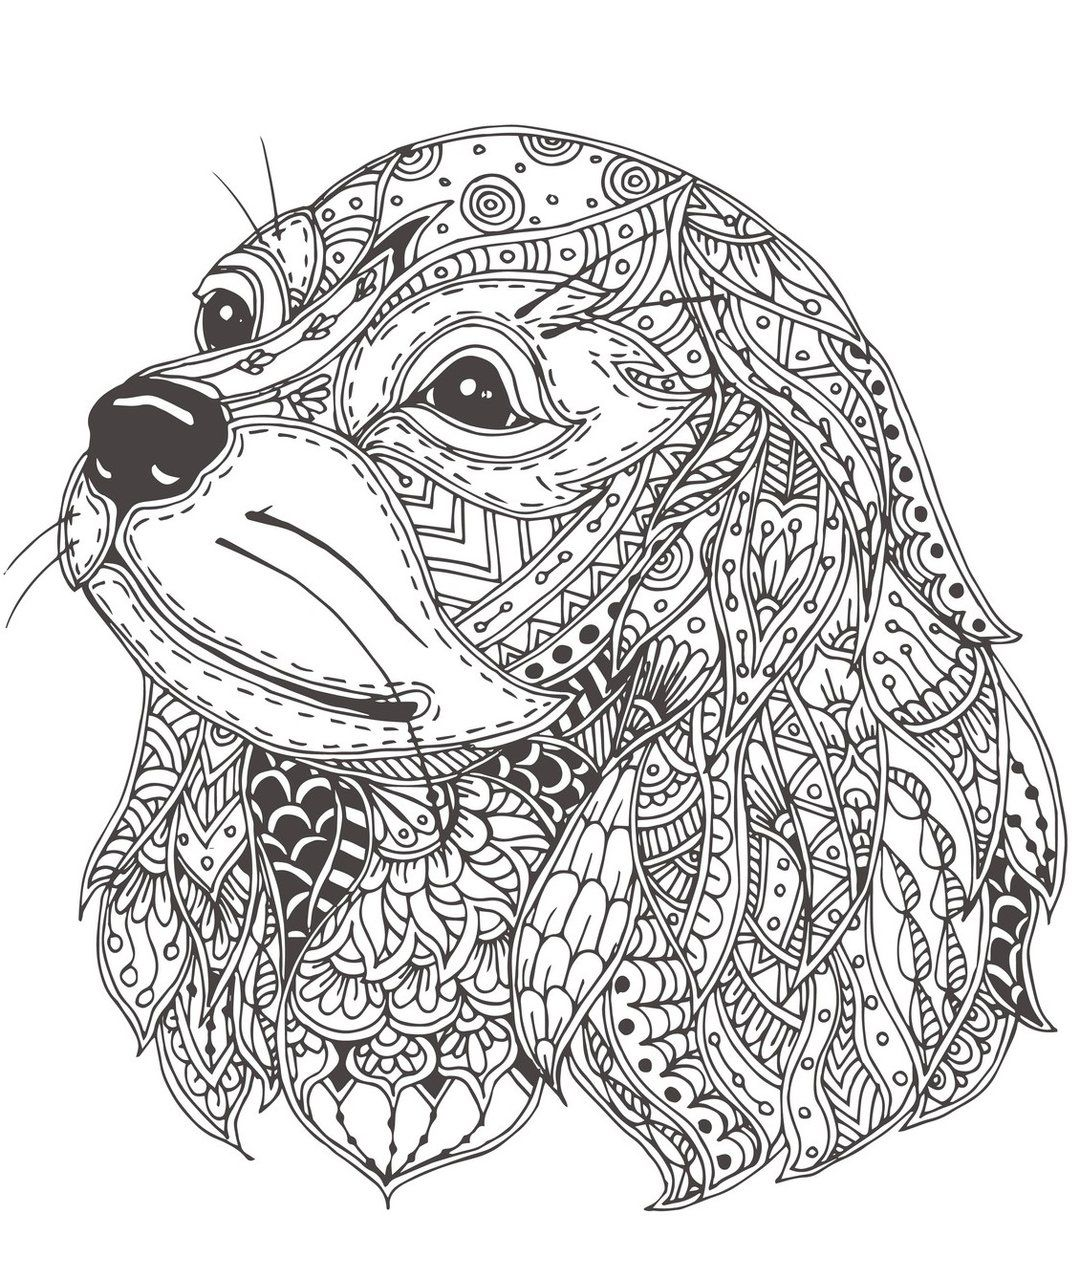 Mandala Dogs Coloring Book Relaxing Cute Ornamental Dog Breeds Rachel Mintz Coloring Books Dog Coloring Book Dog Drawing Dog Images [ 1279 x 1080 Pixel ]